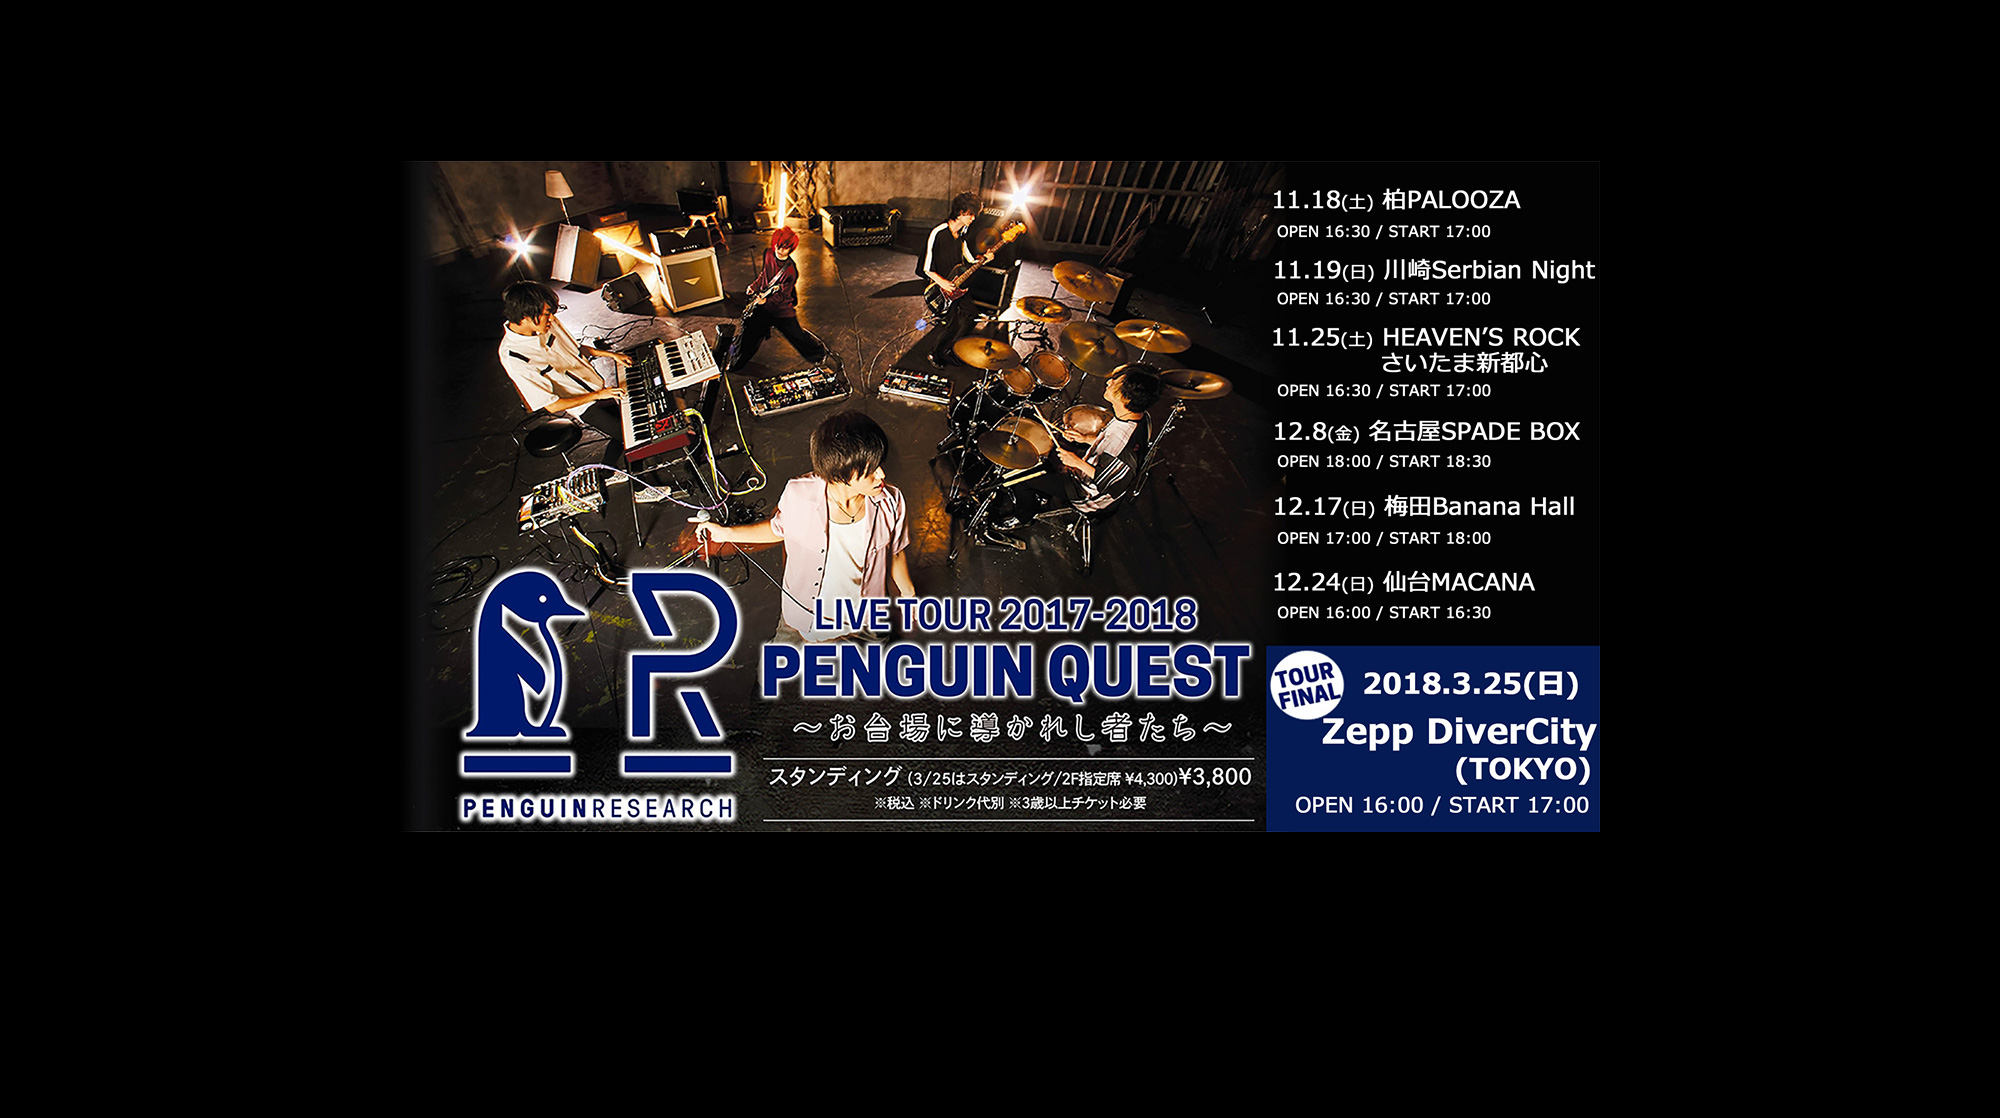 LIVE TOUR 2017-2018 PENGUIN QUEST